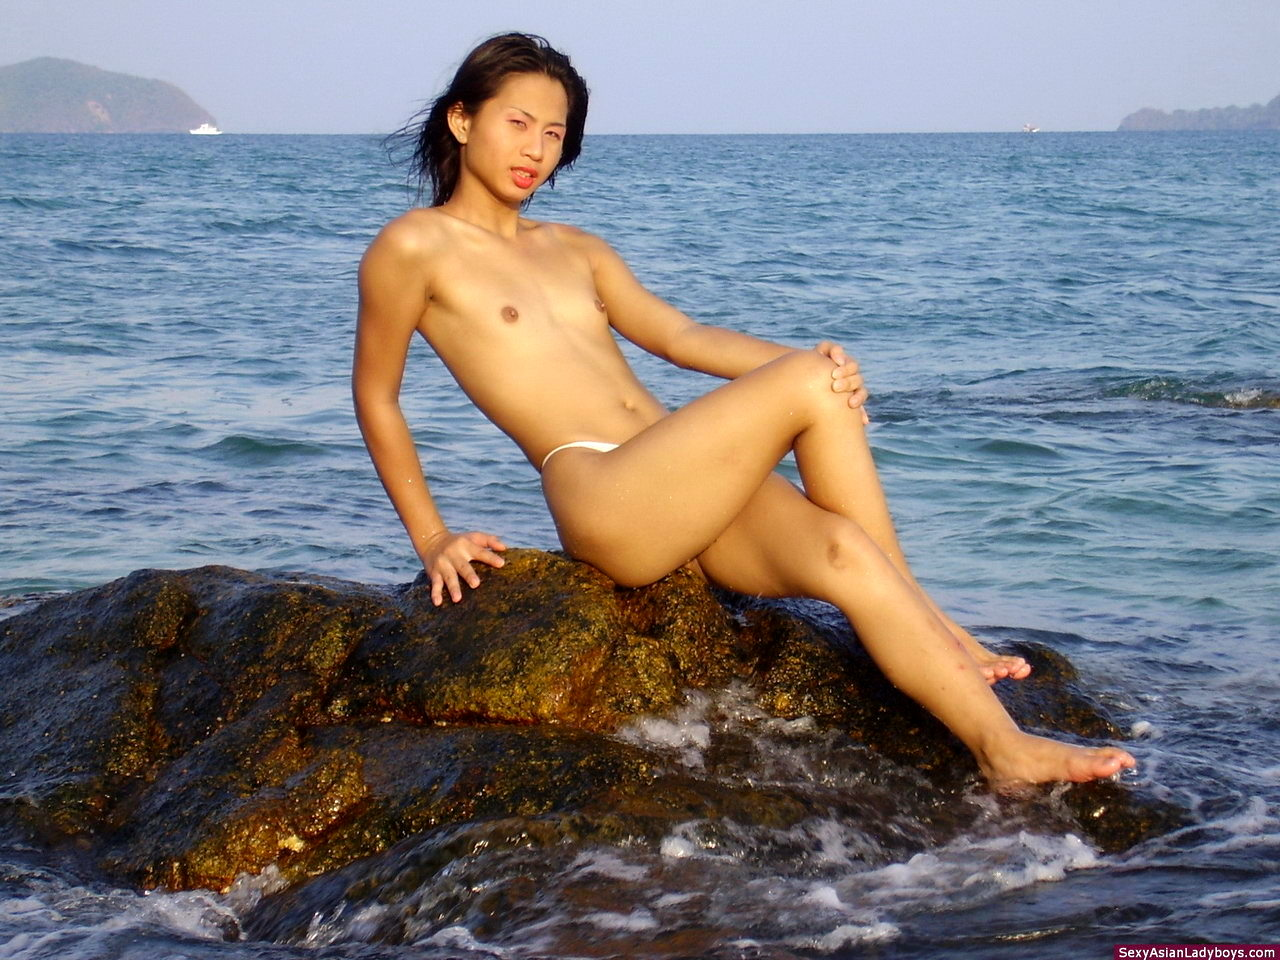 Provoking Little Shemale Stripping And Flashing Her Hot Body On A Tropical Beach